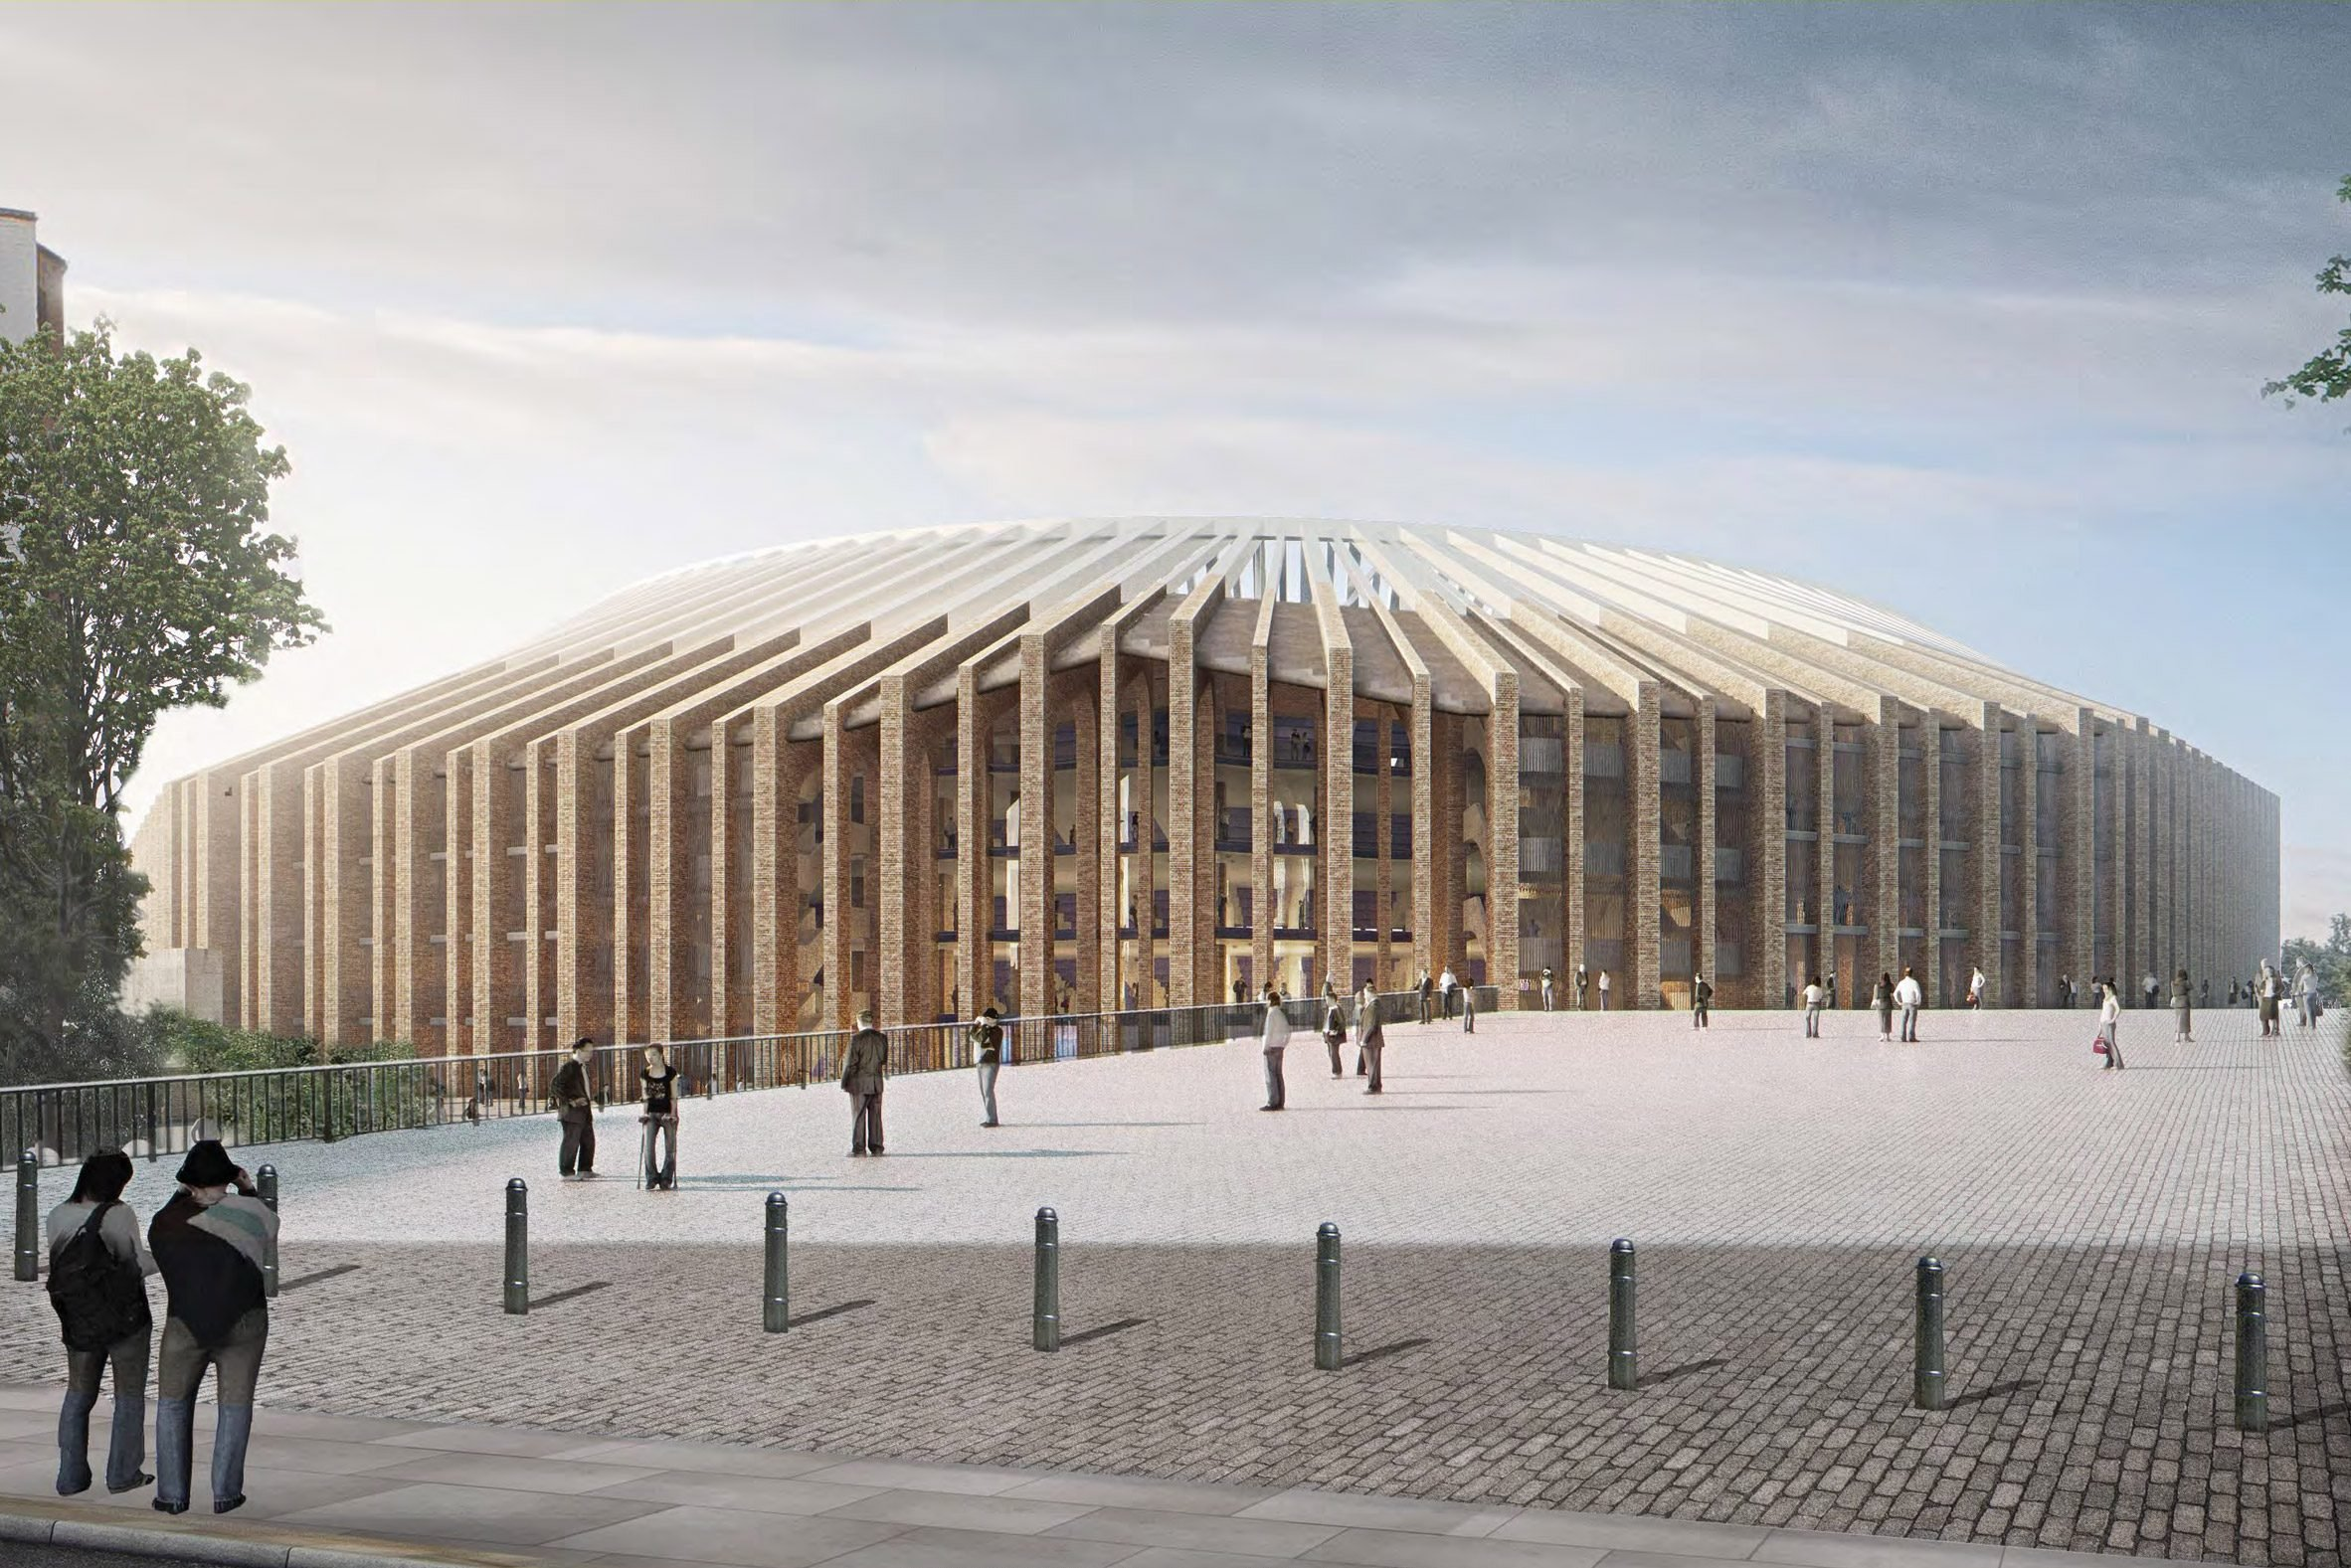 Herzog & de Meuron secures permission to revamp Chelsea FC football stadium